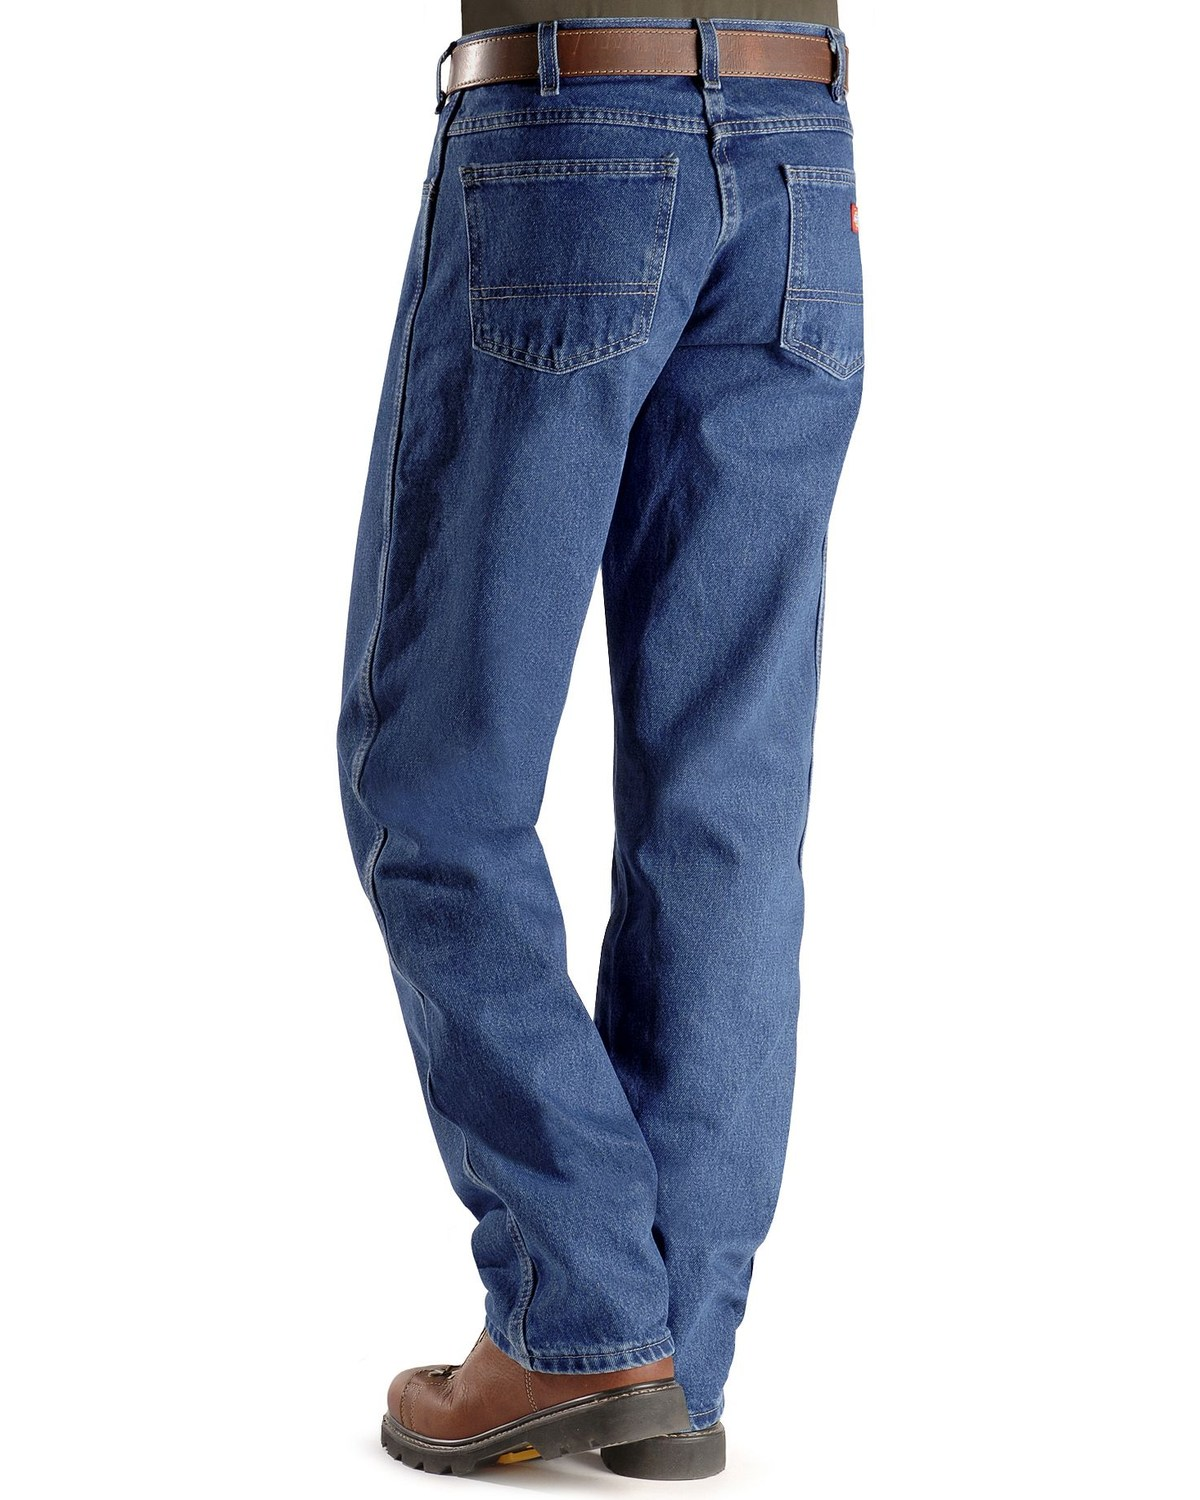 5d3628b7 Zoomed Image Dickies Jeans - Relaxed Fit Work Jeans, Stonewash, hi-res